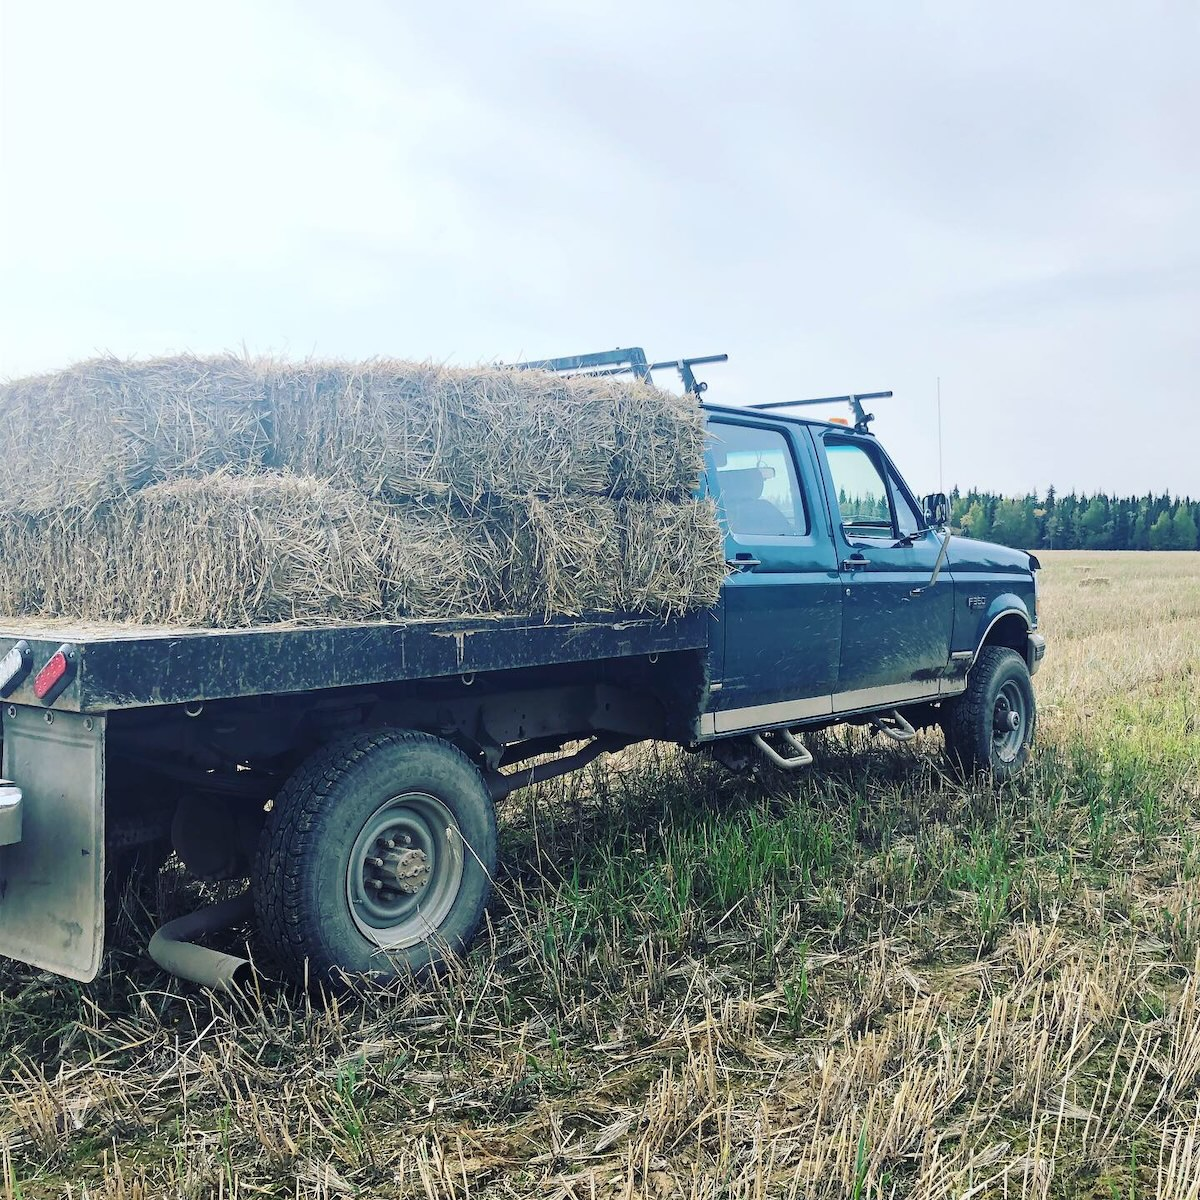 A flatbed truck holds a tall stack of straw bales